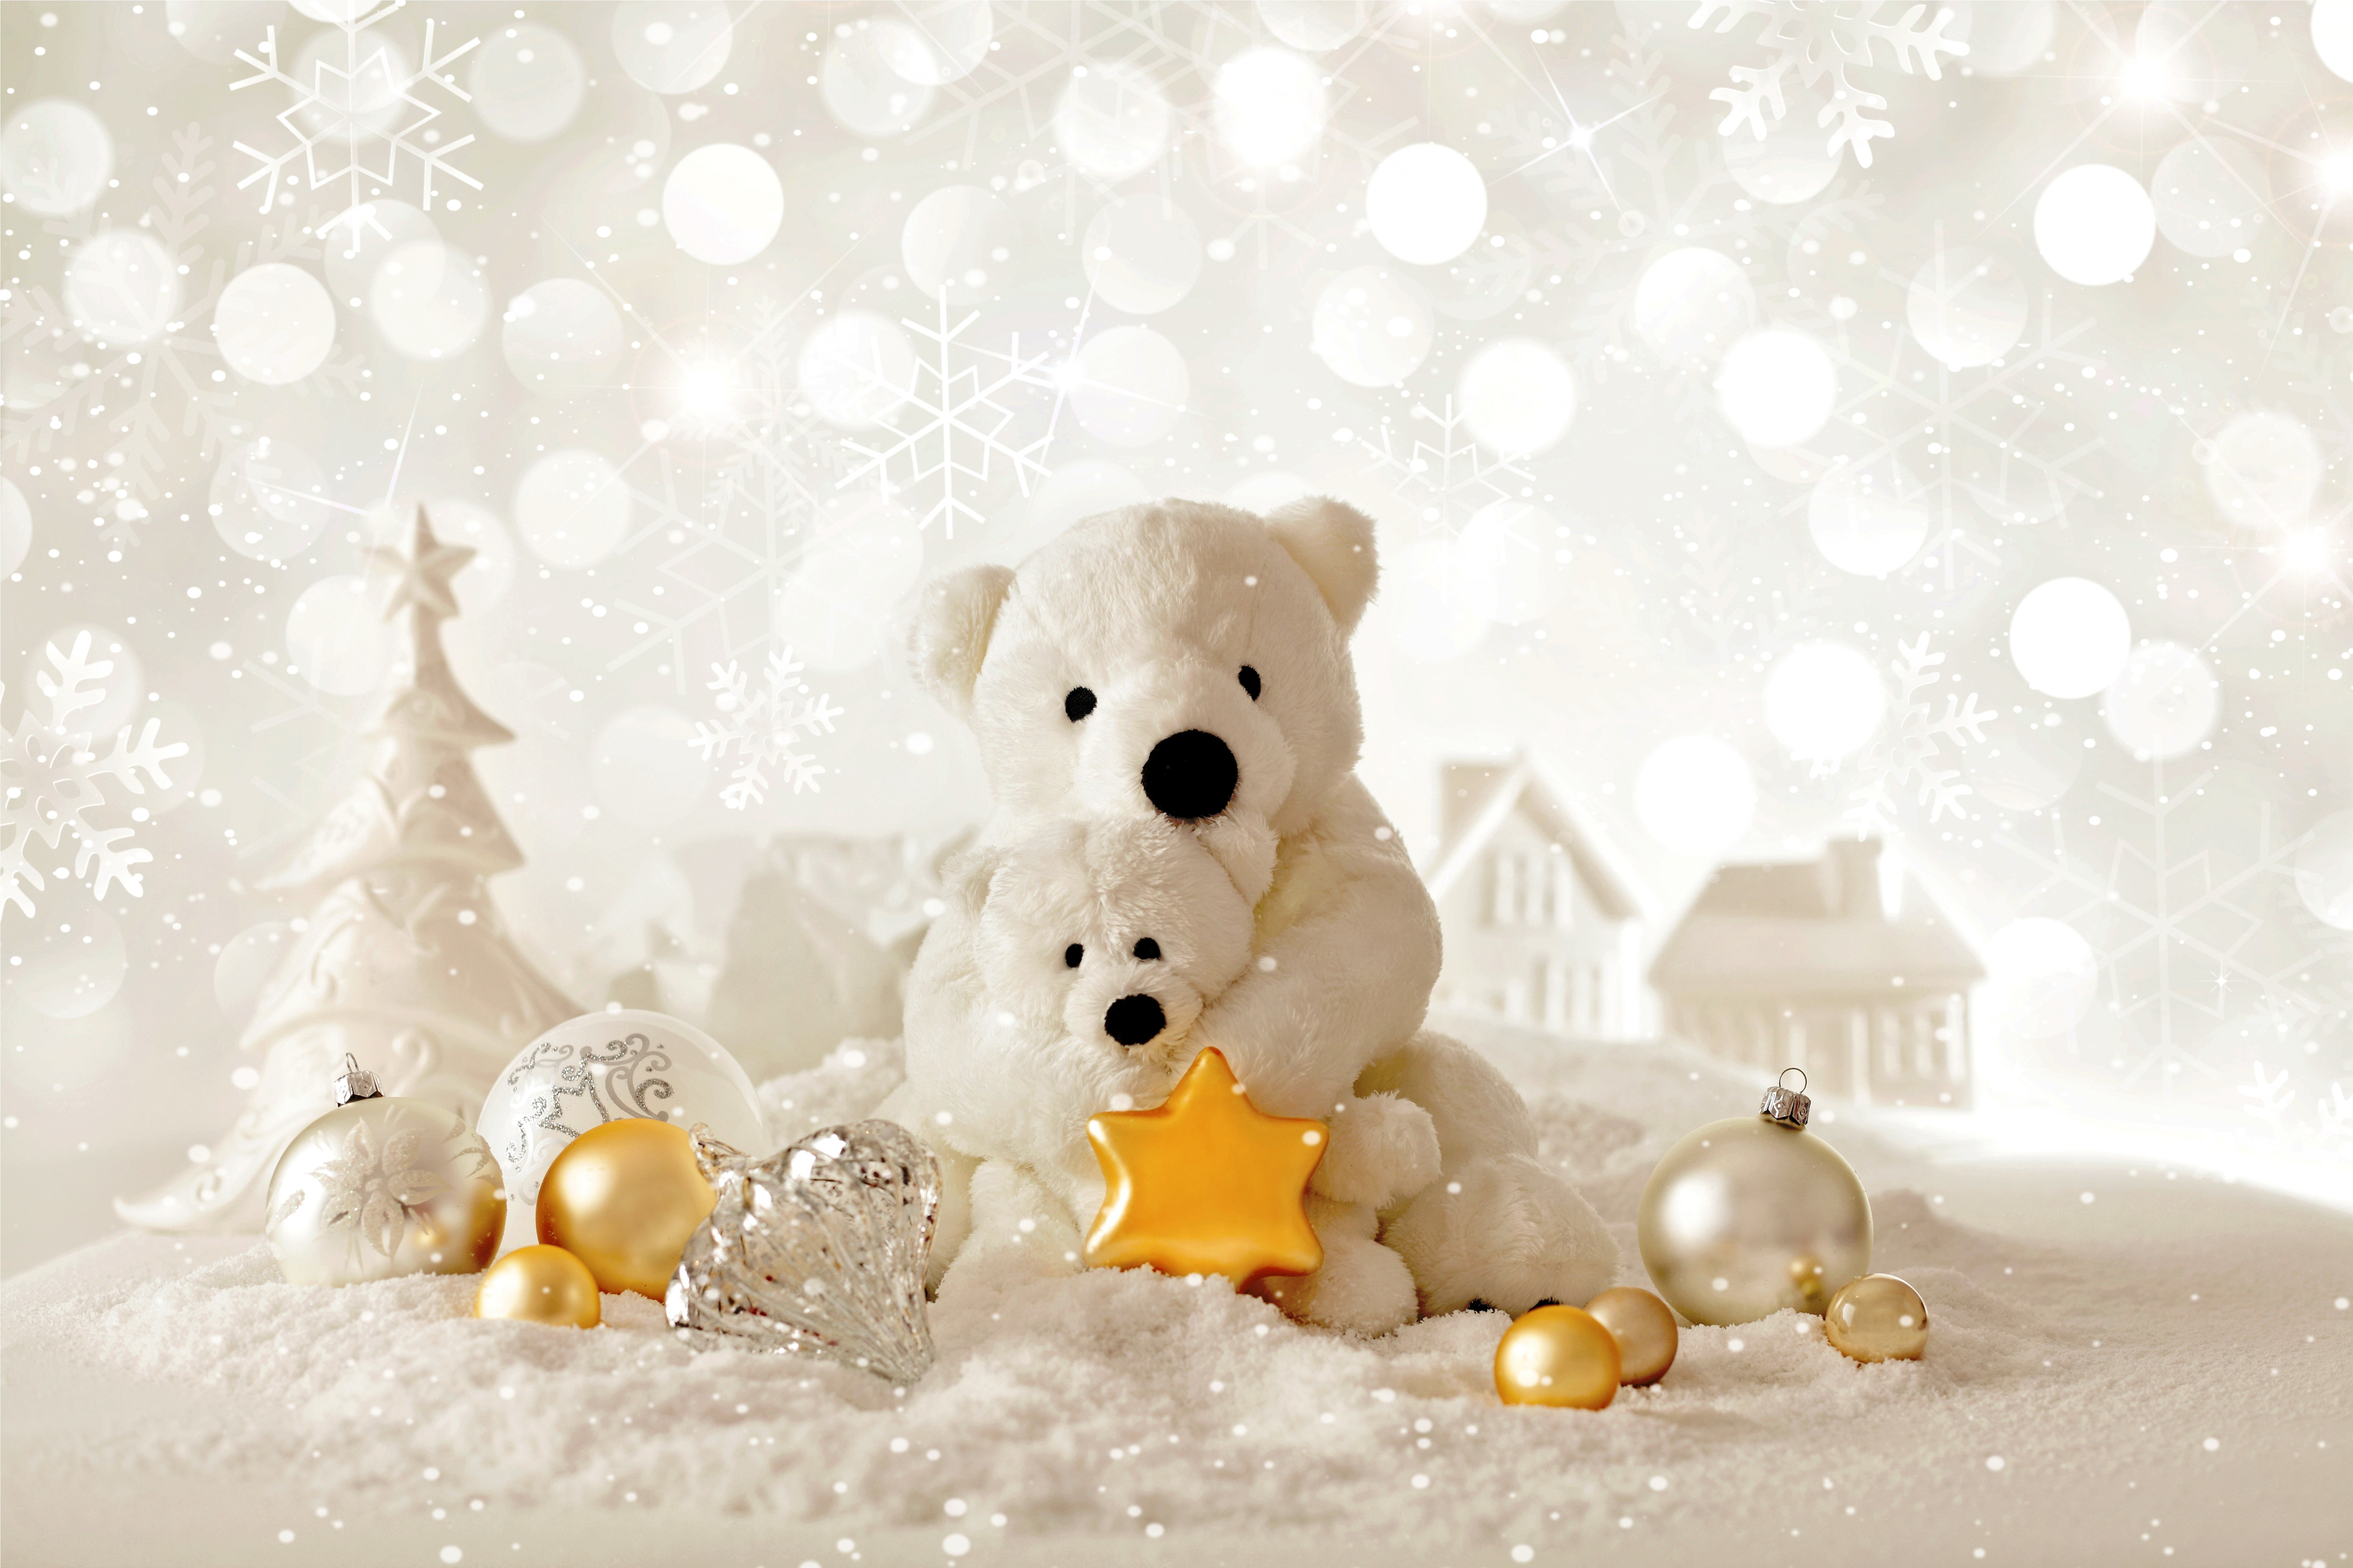 White christmas tree decorations quotes - Wallpaper Christmas New Year Bear Decorations Holidays